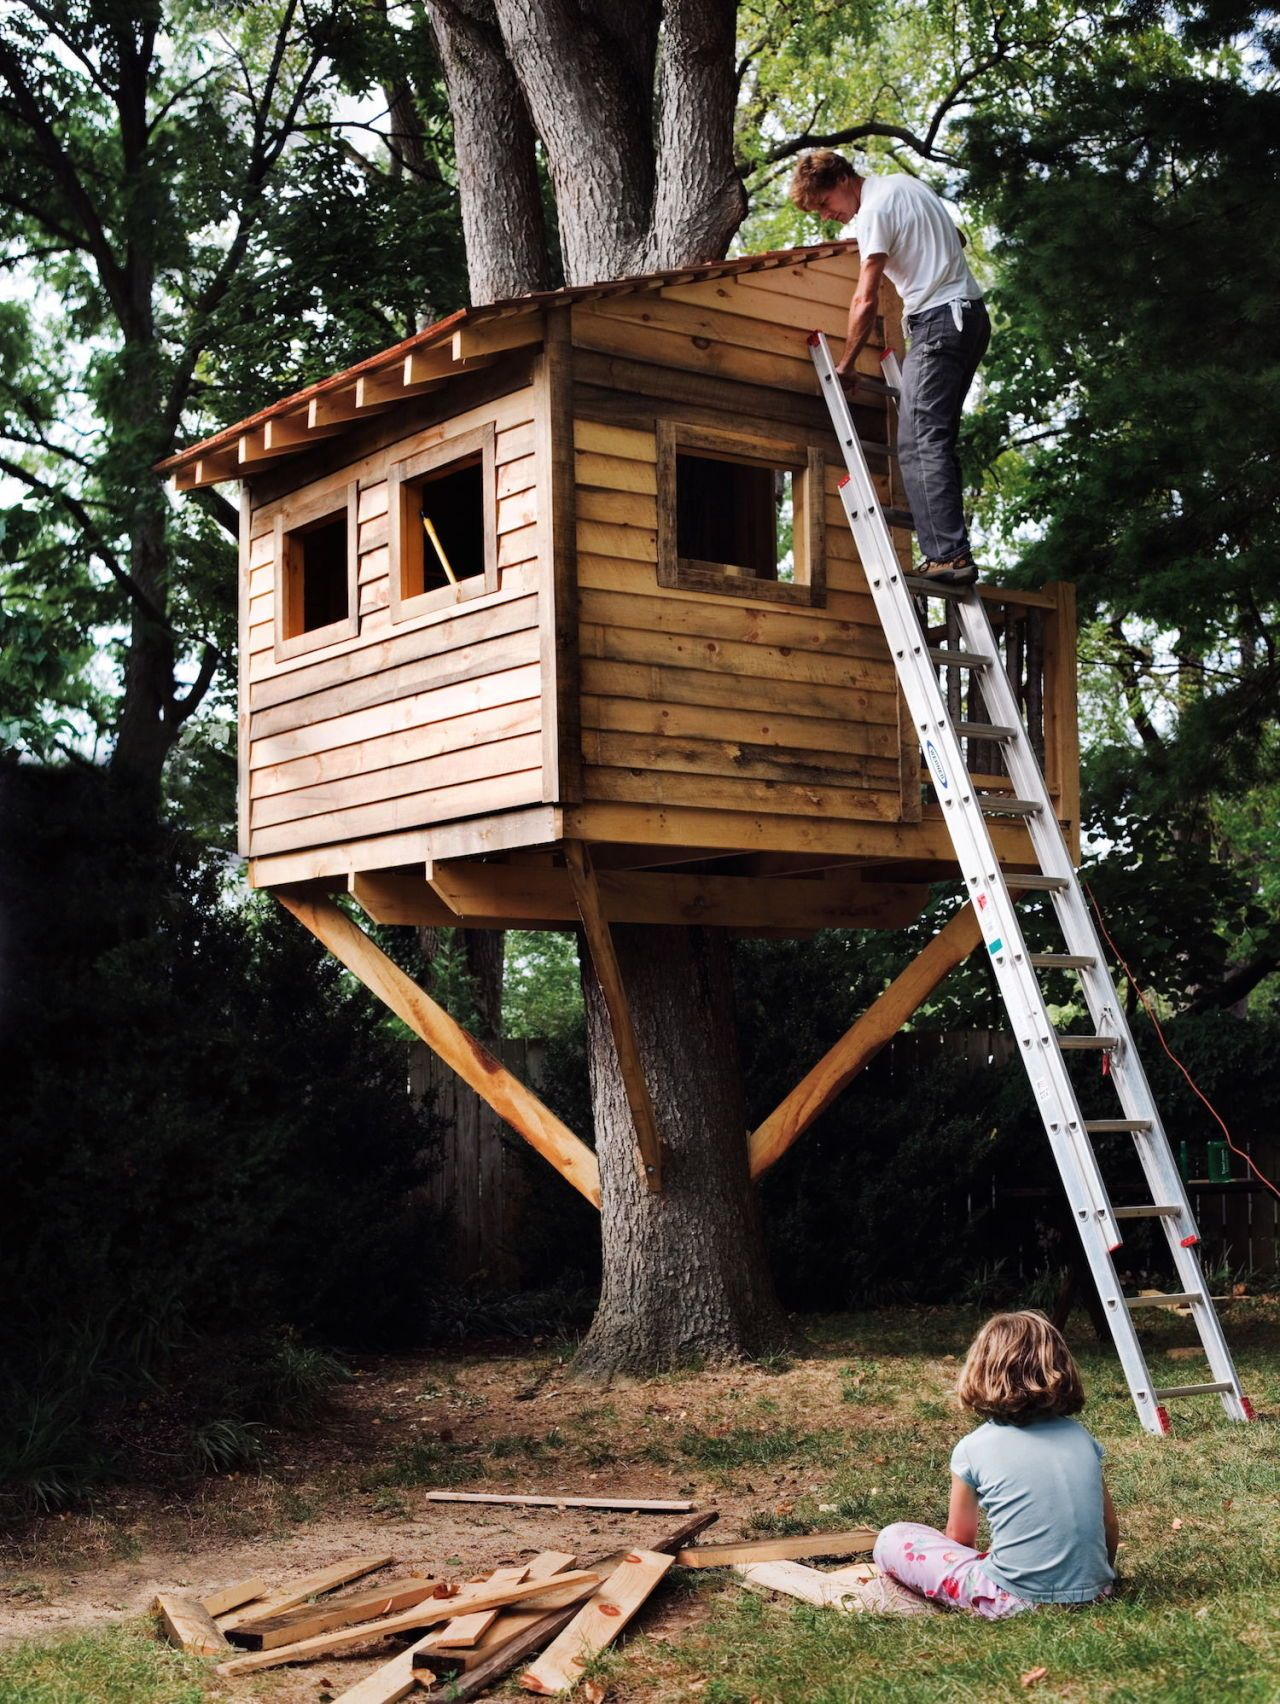 How to Build a Treehouse in the Backyard | Treehouse, Backyard and ...